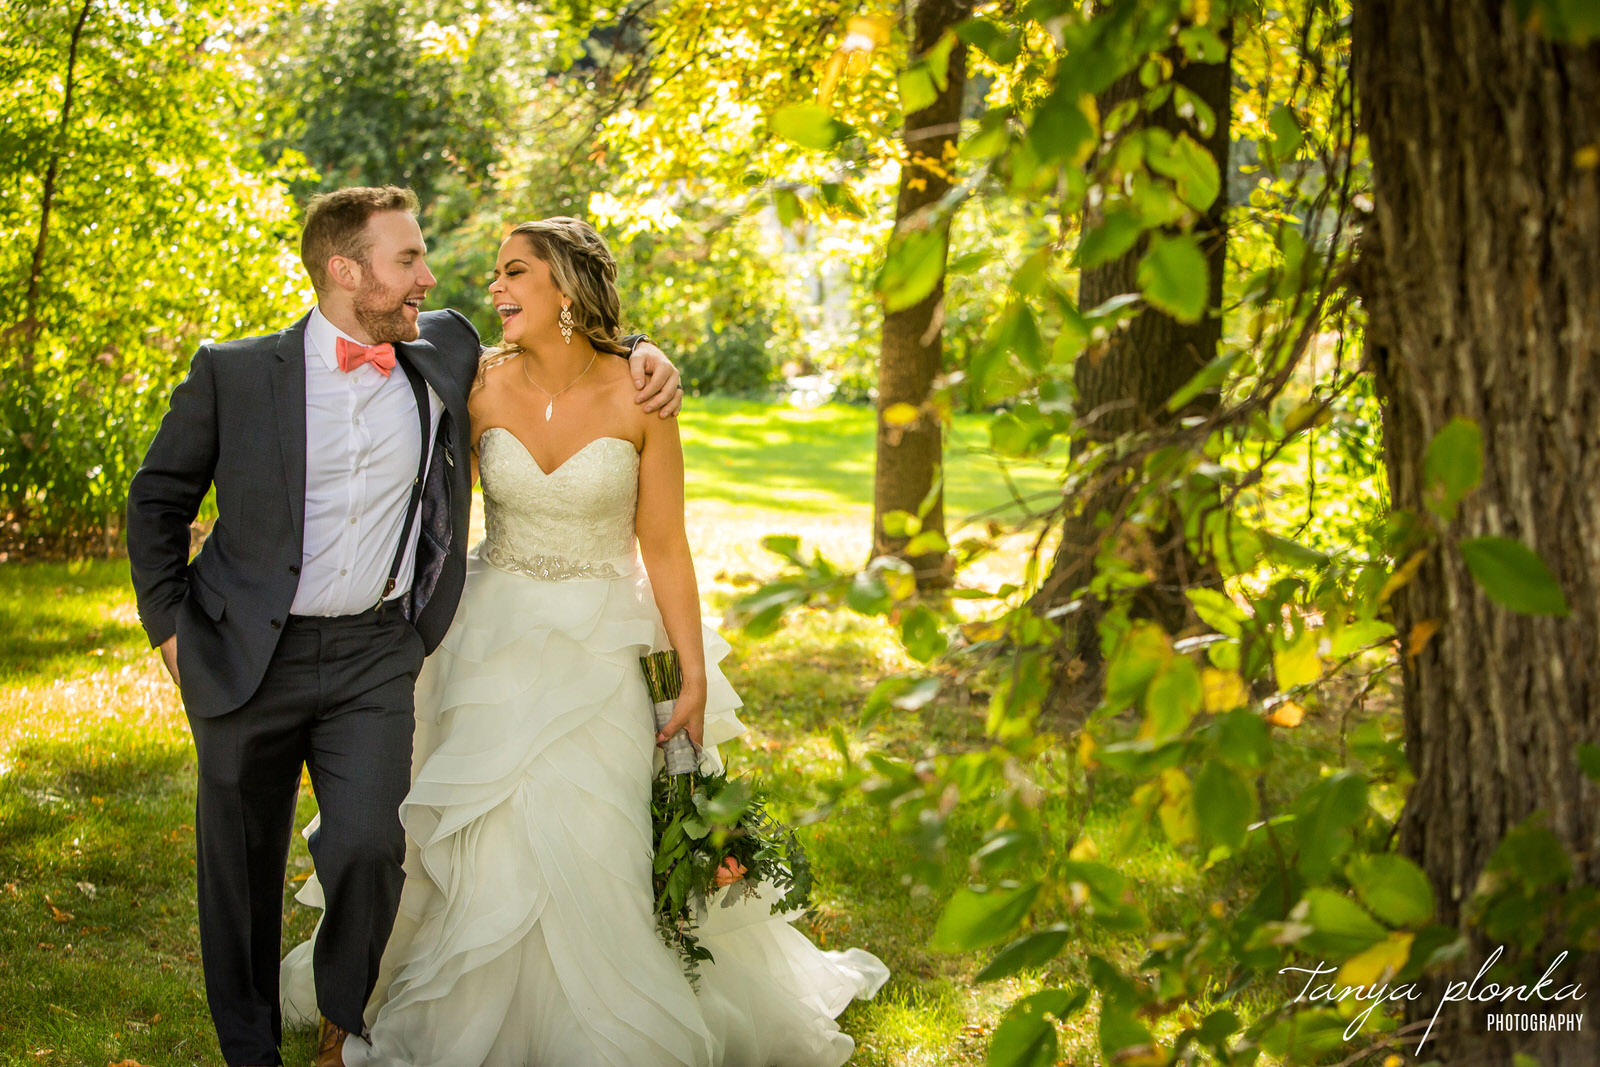 laughing bride and groom walk through trees at Lethbridge Research Centre with arms around each other